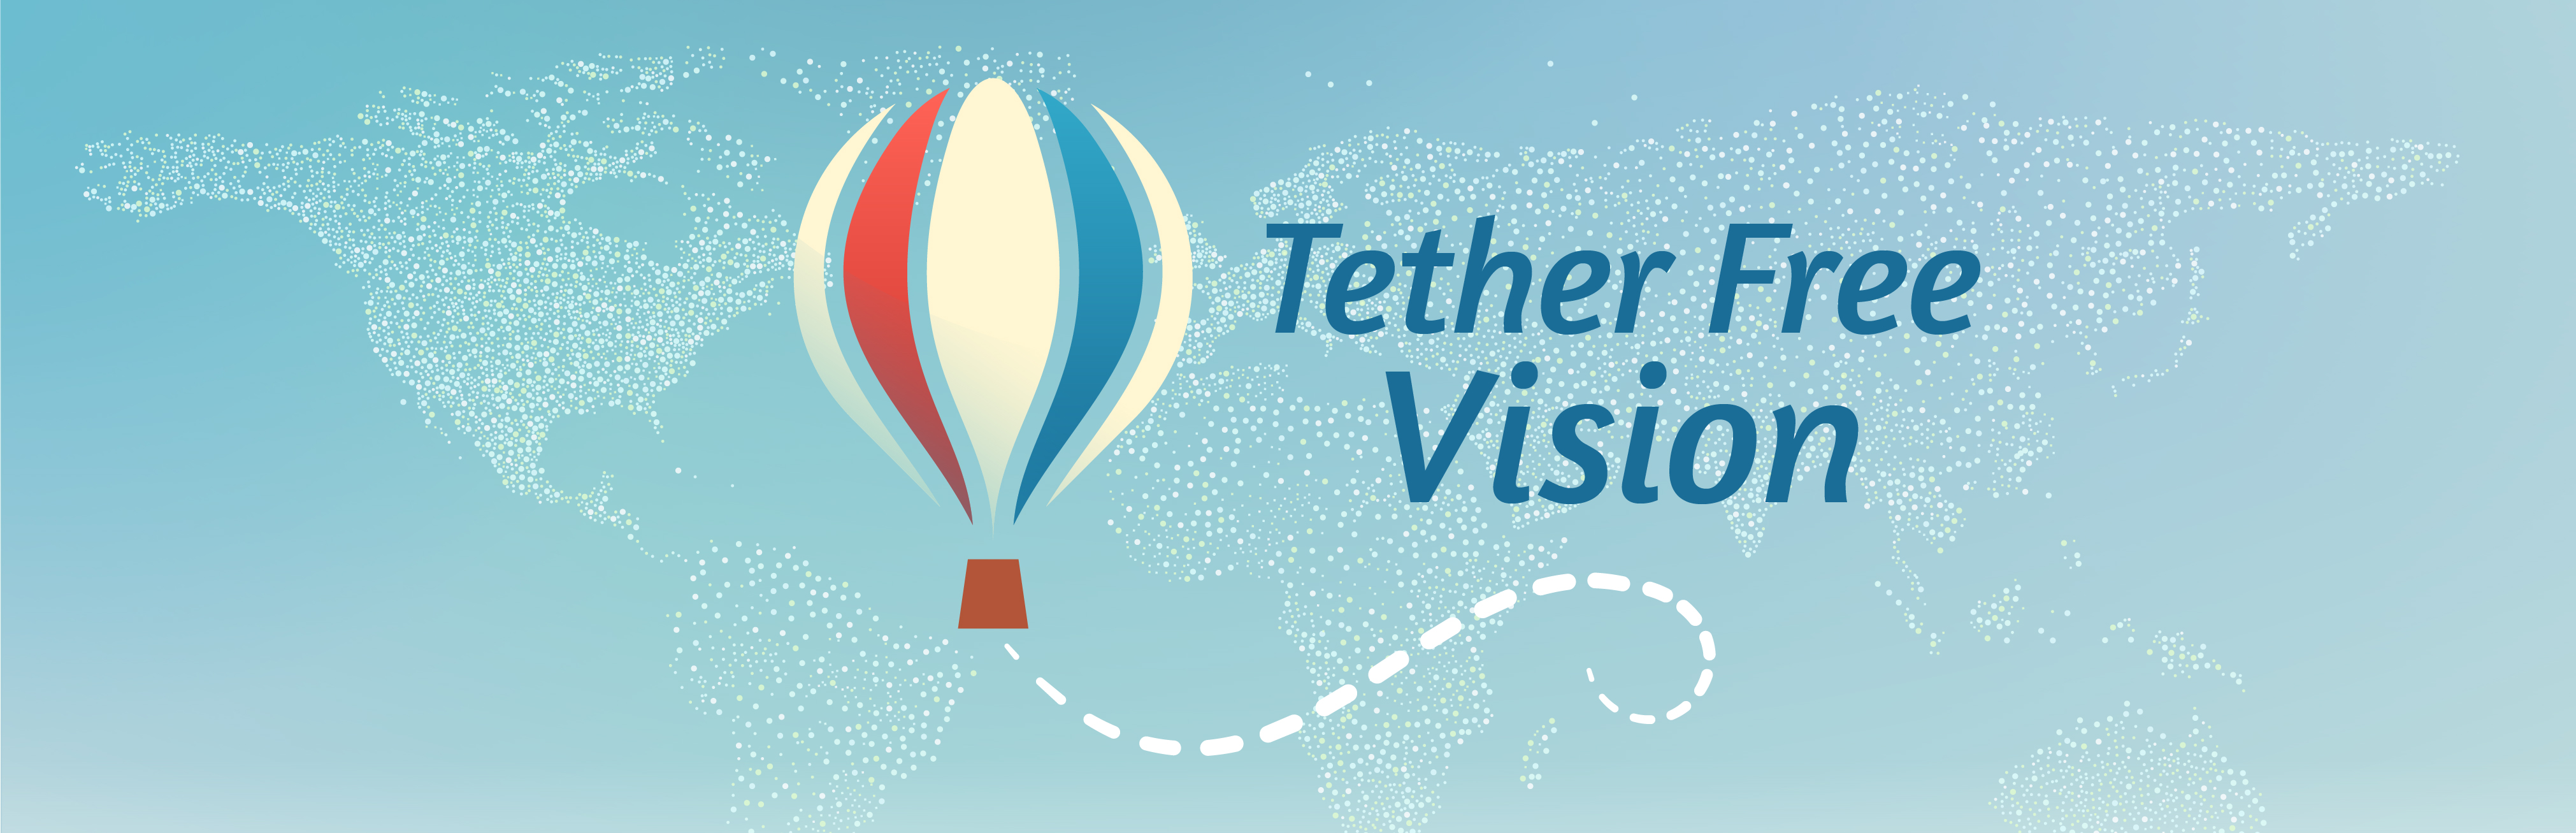 Tether Free Vision